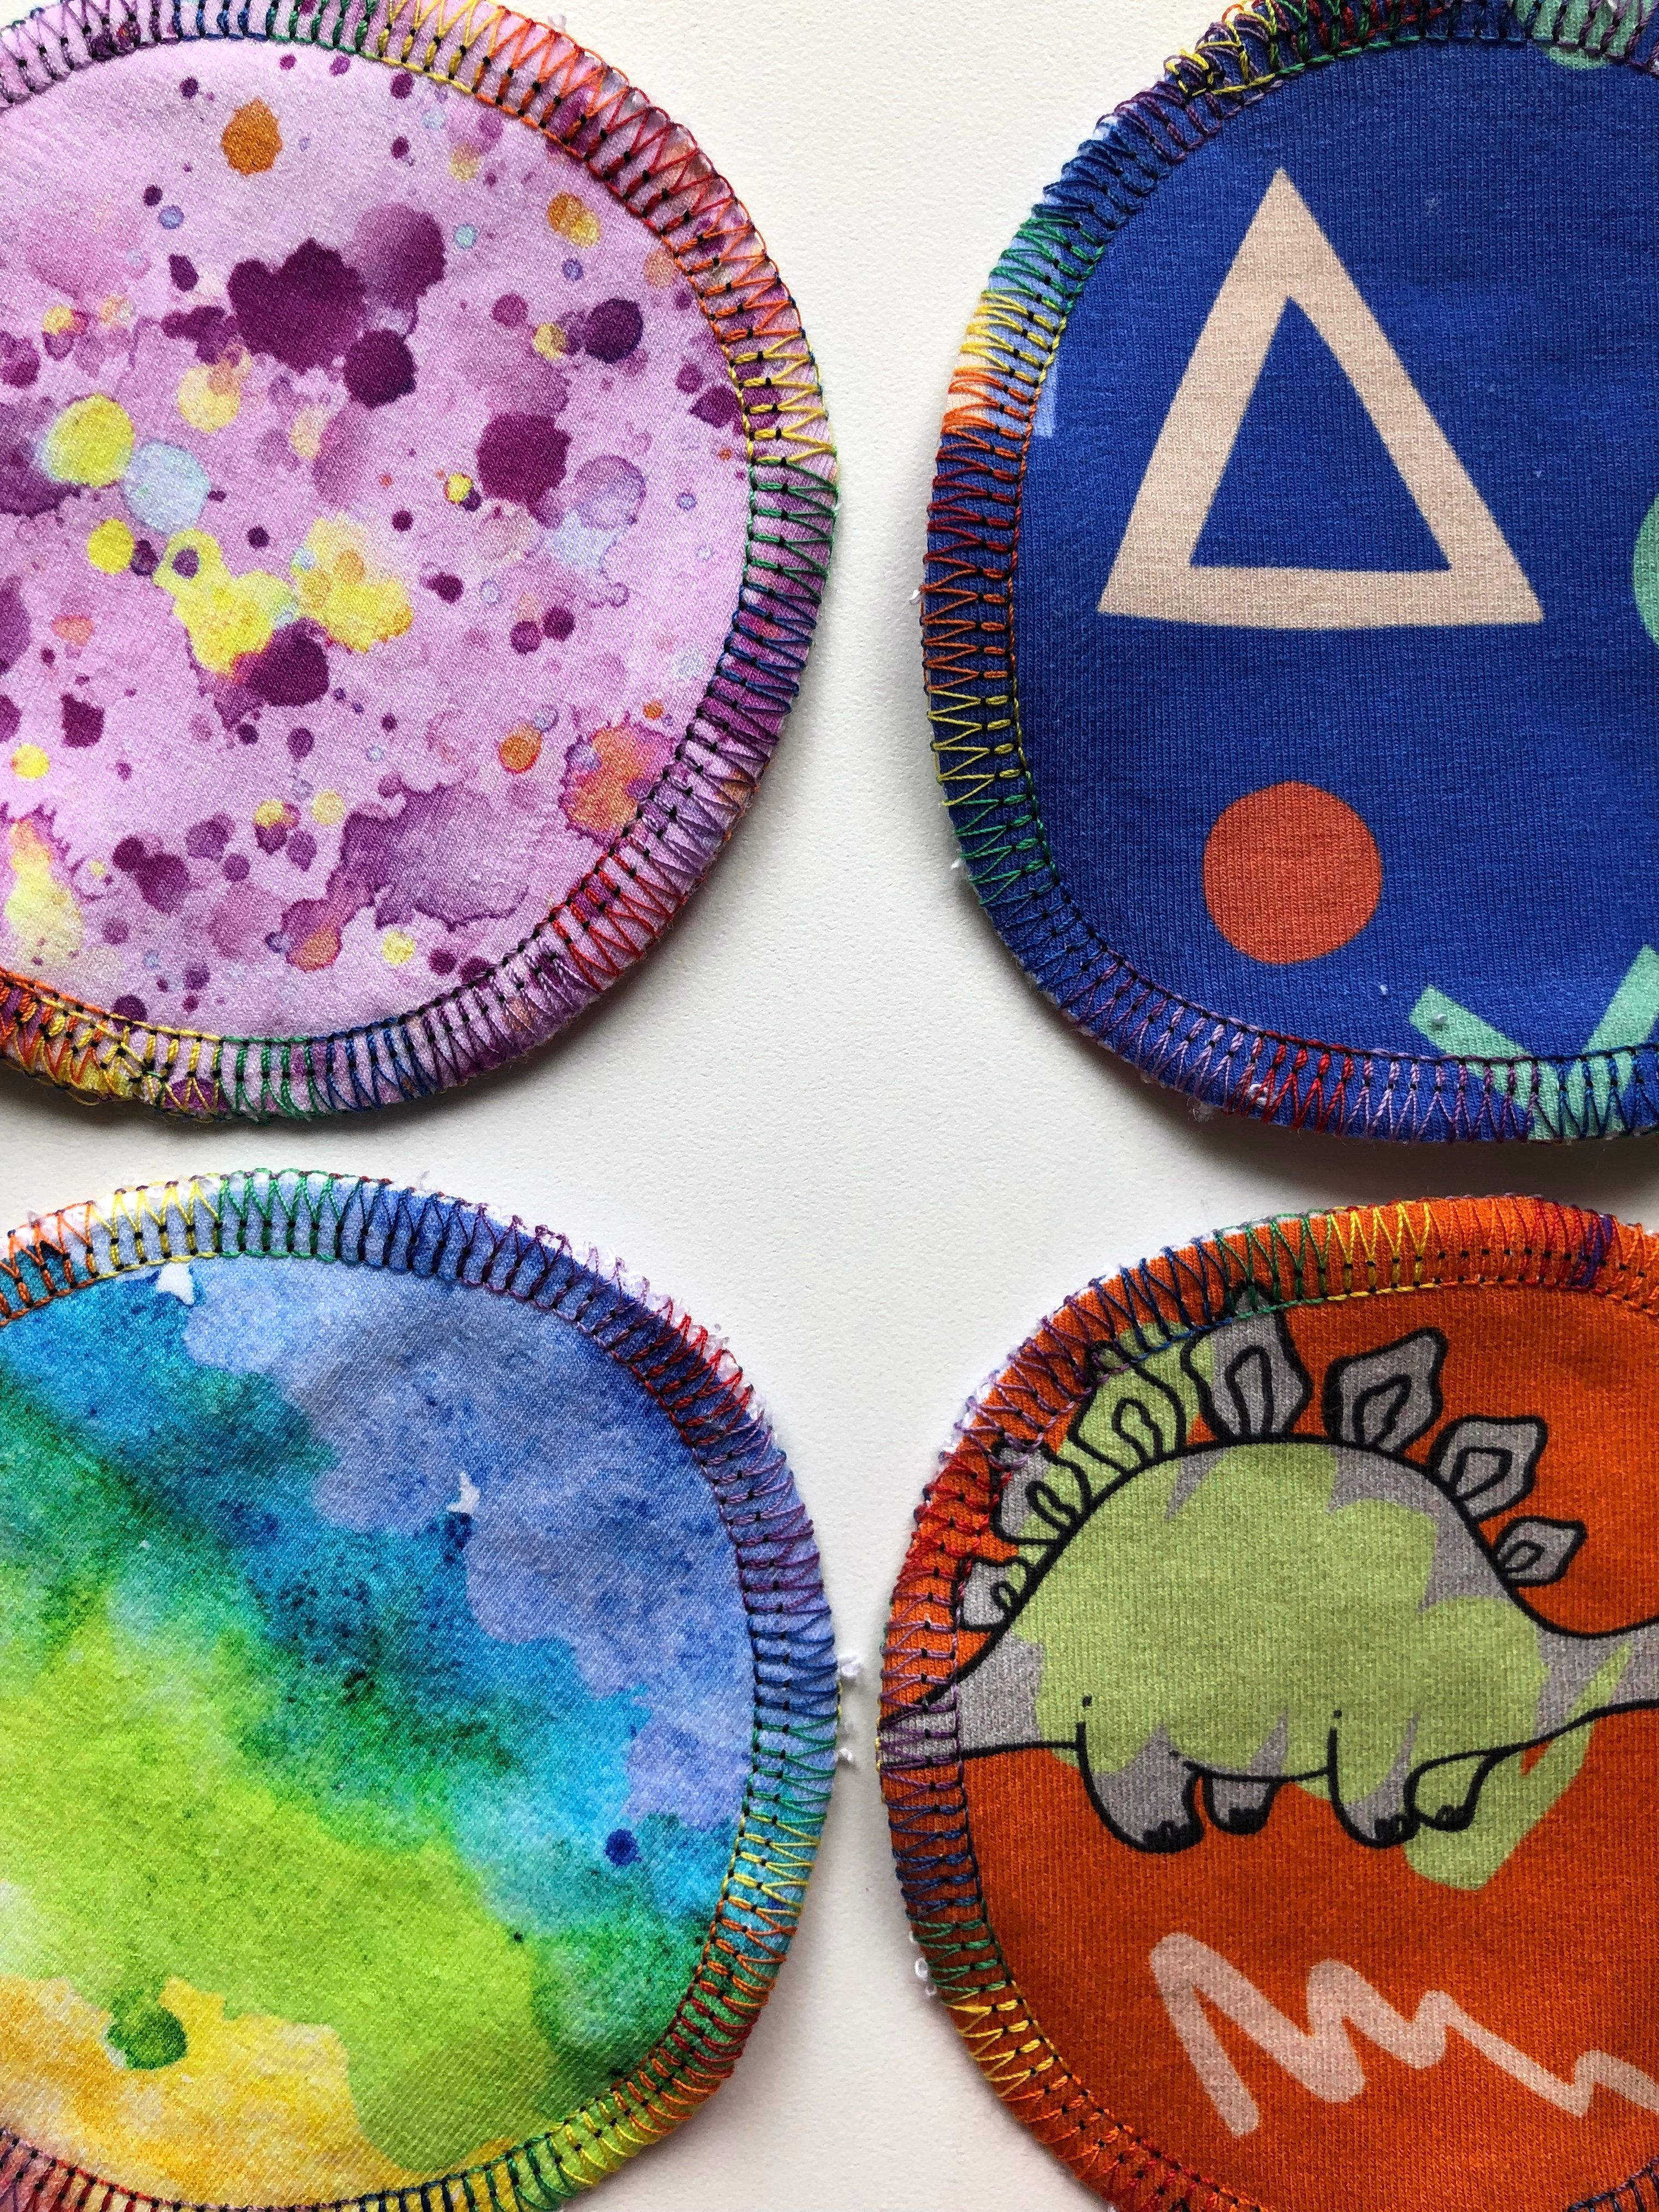 Reusable Make Up Wipes Reusable, Wipes, How to make